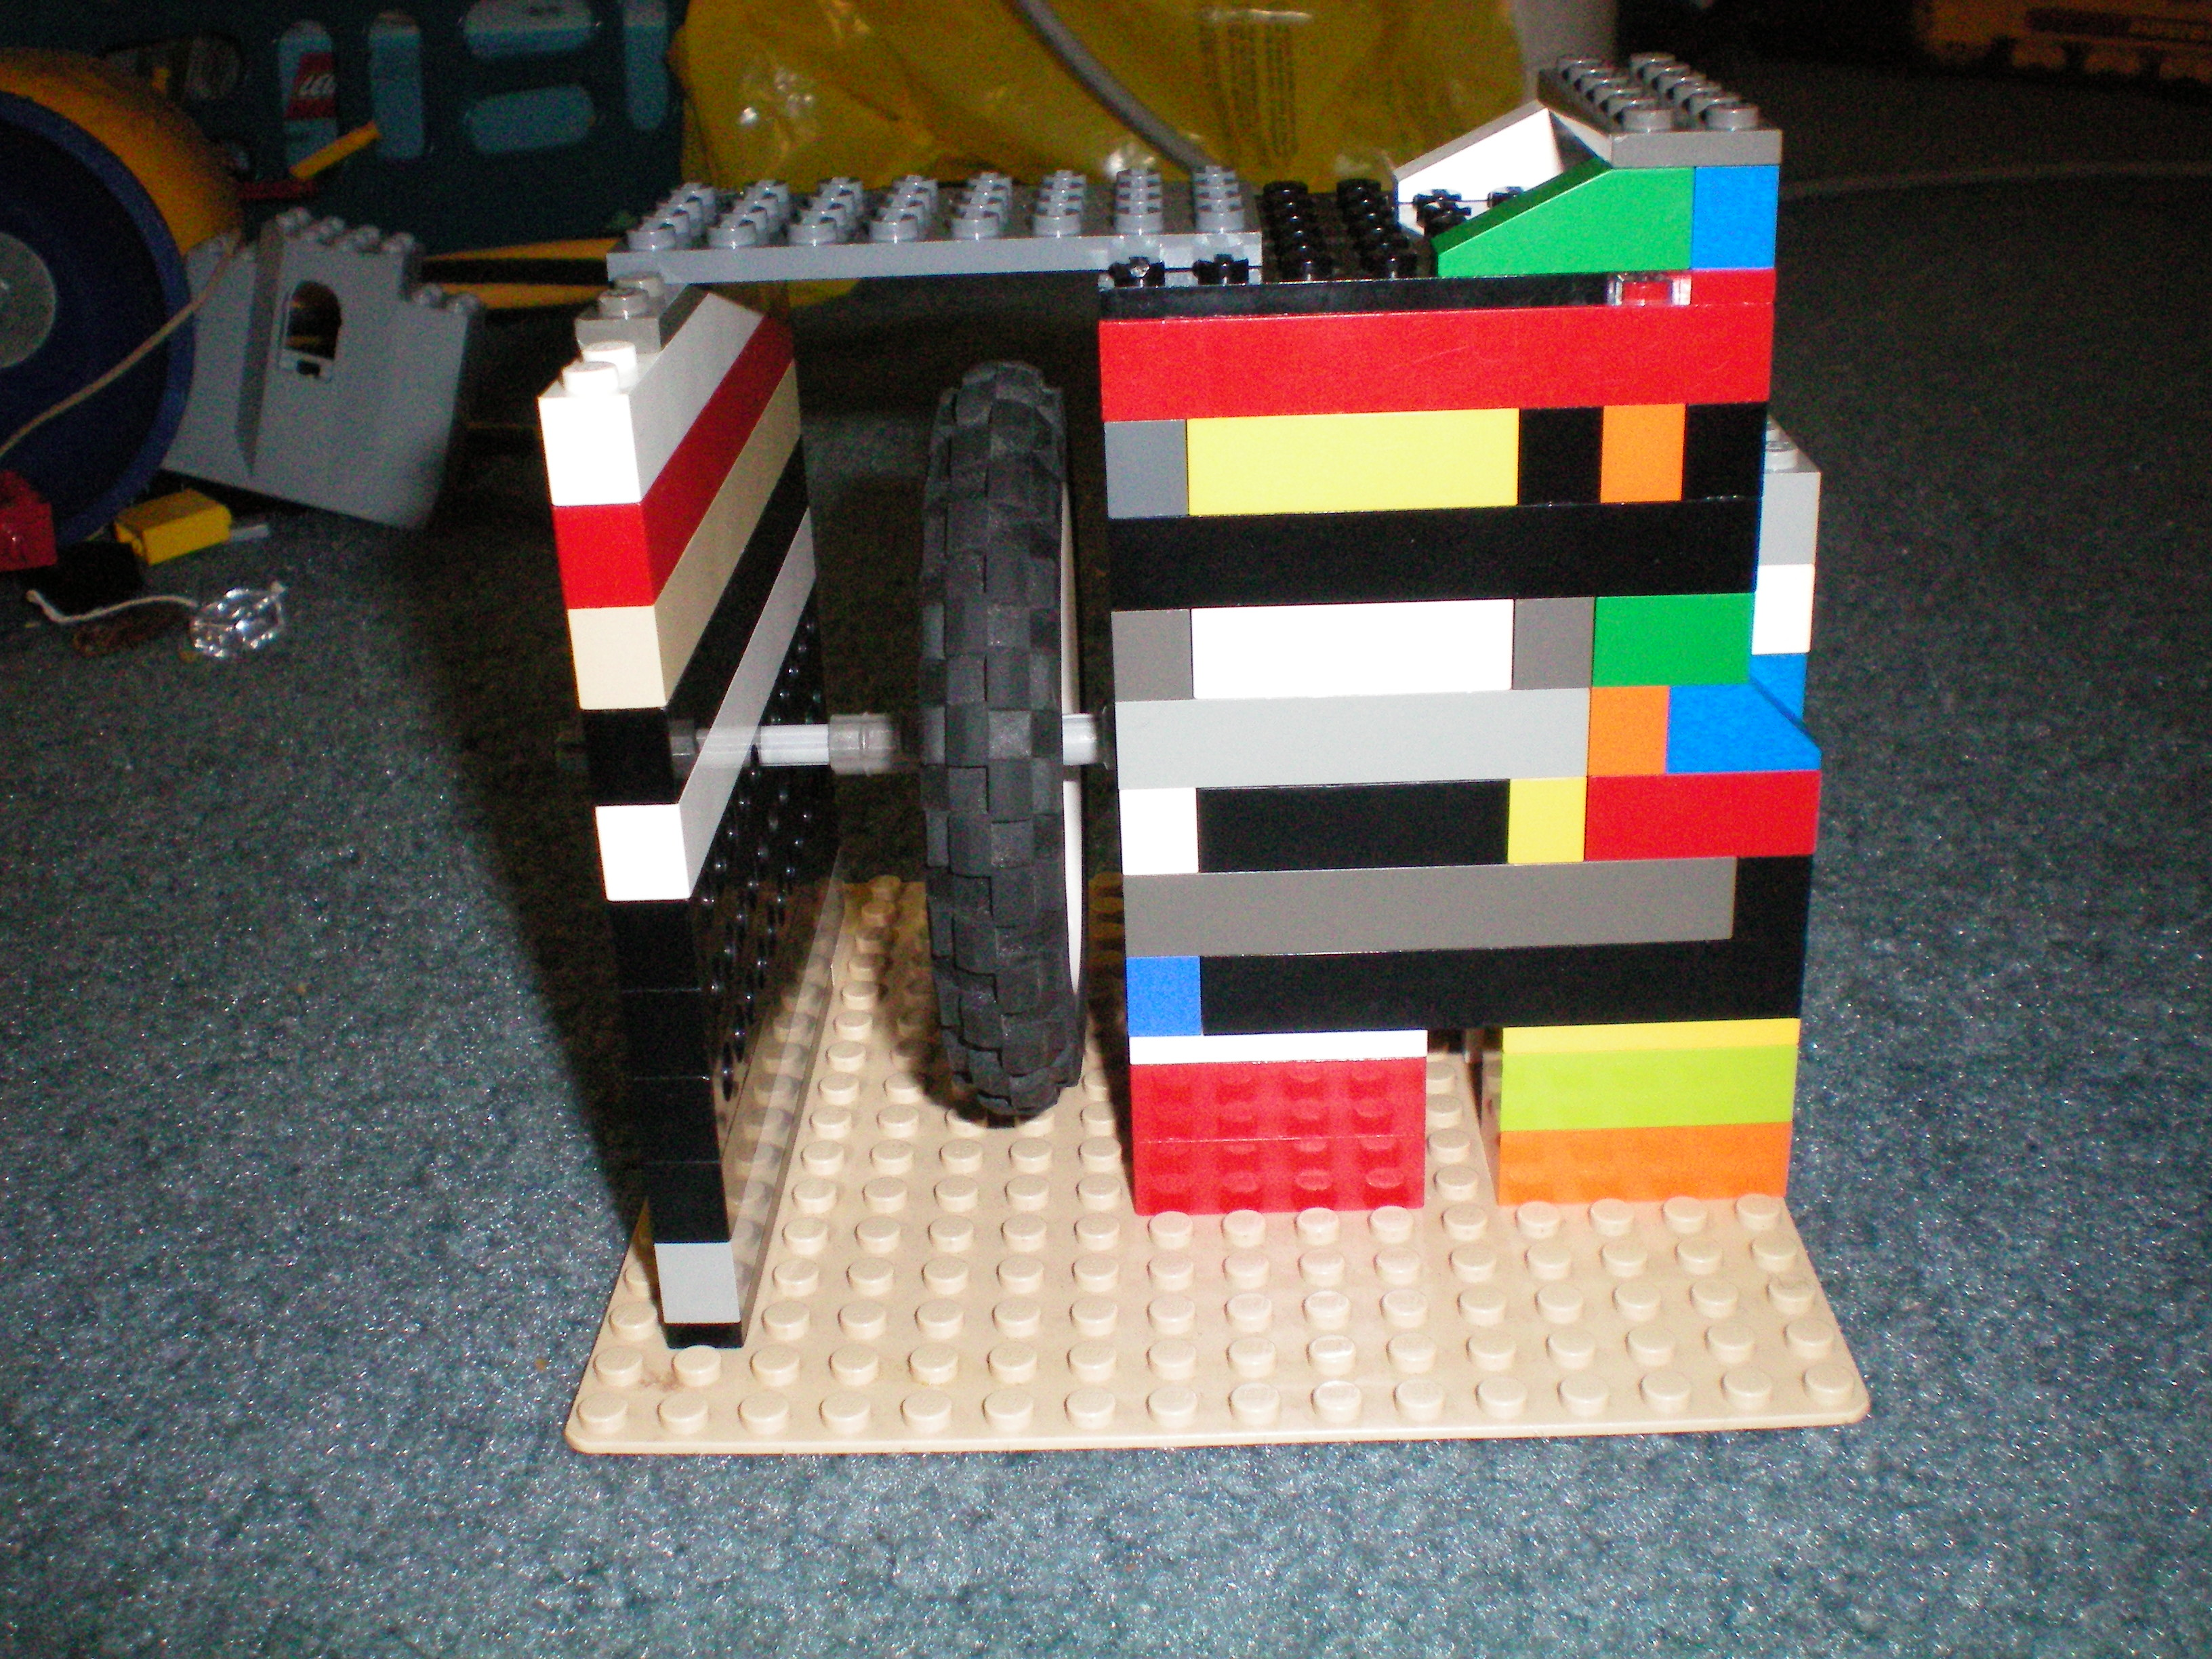 lego_vacuum_engine_v4.0_side_view_2.jpg